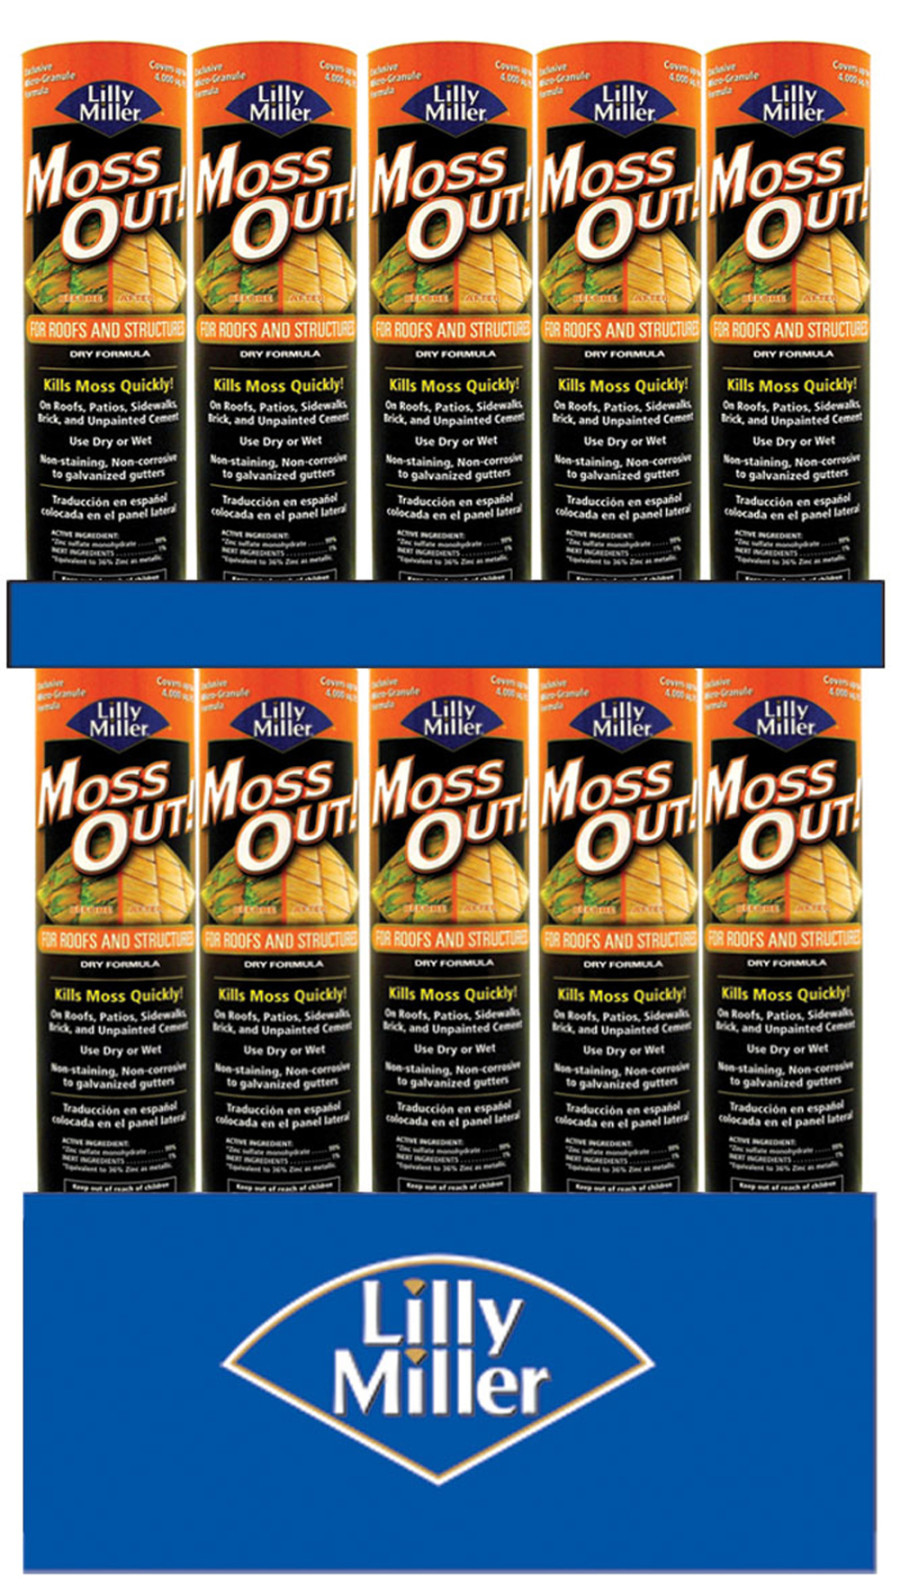 Lilly Miller Moss Out! For Roofs And Structures Dry Formula Quarter Pallet 72ea/4 lb